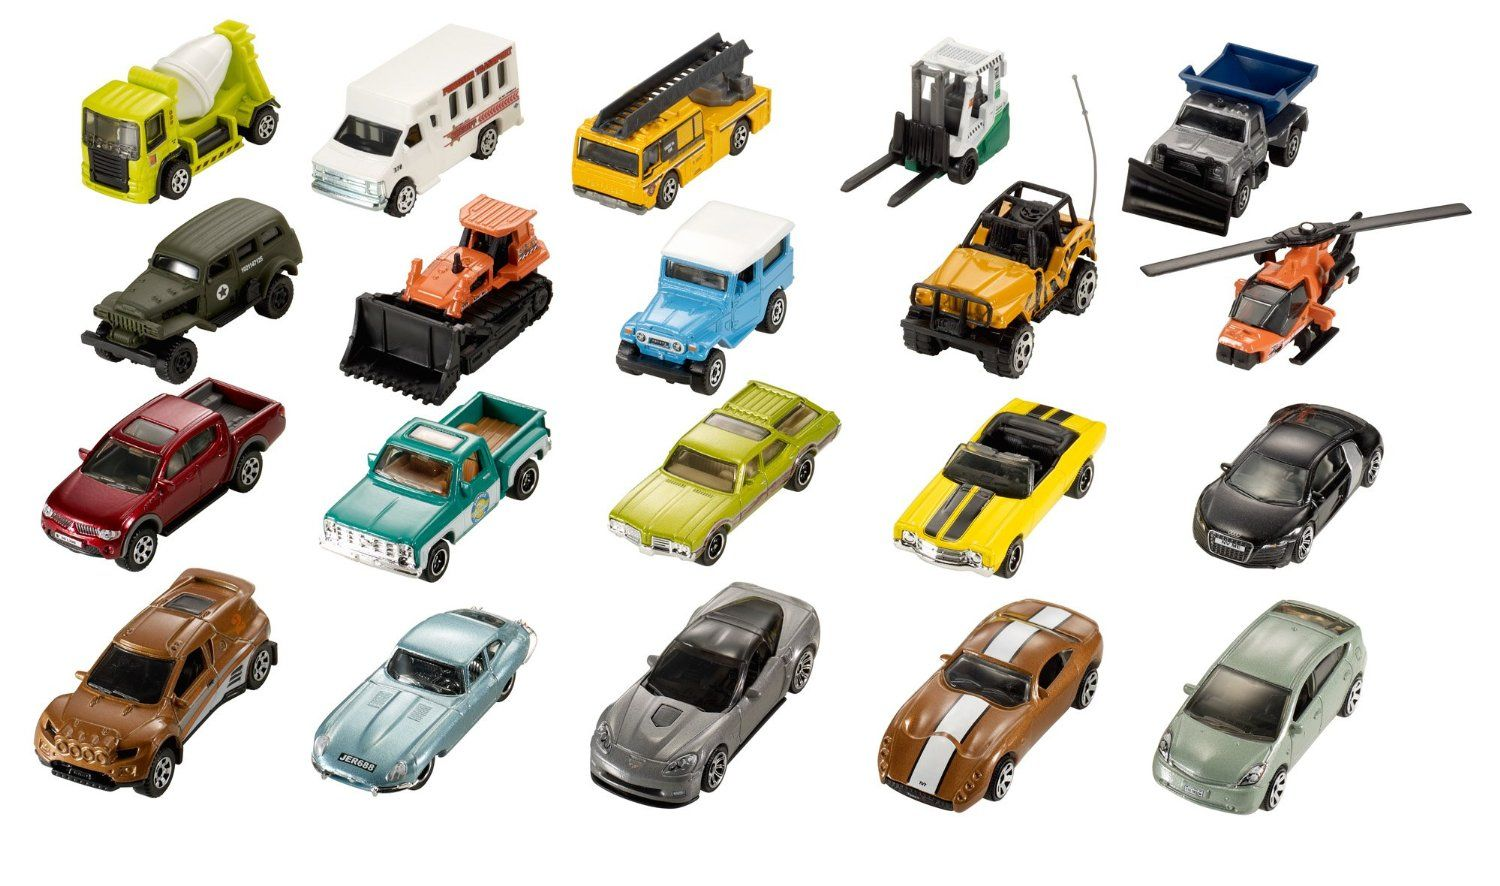 hot wheels vehicles designed wth meticulous attention t dtl